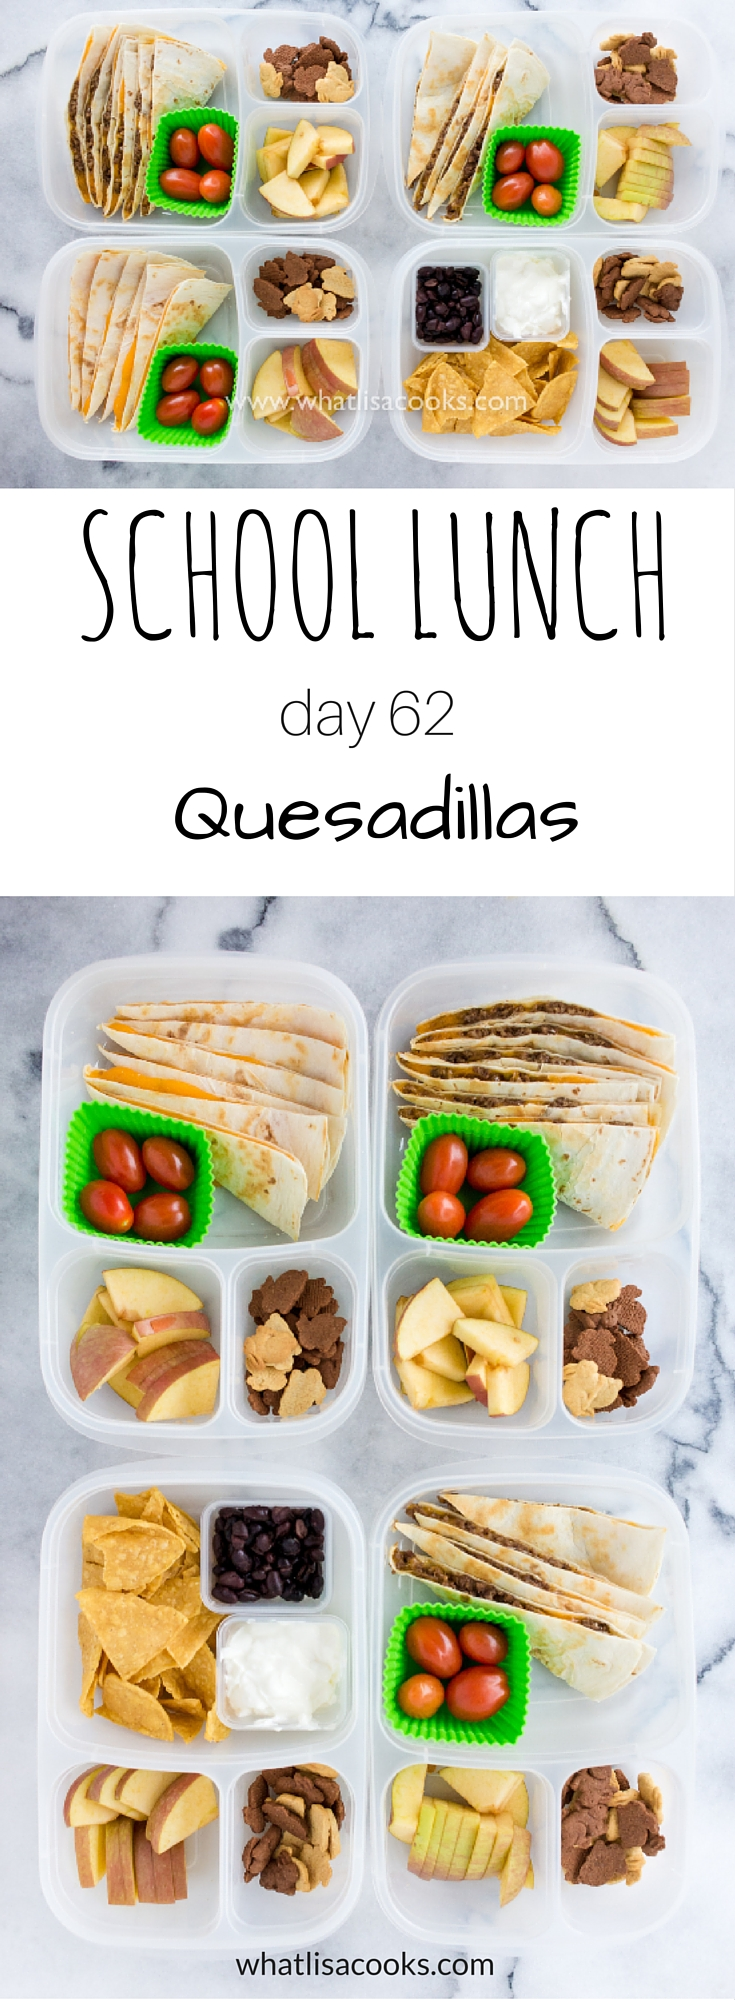 School Lunch Day 62 - quesadillas - from WhatLisaCooks.com